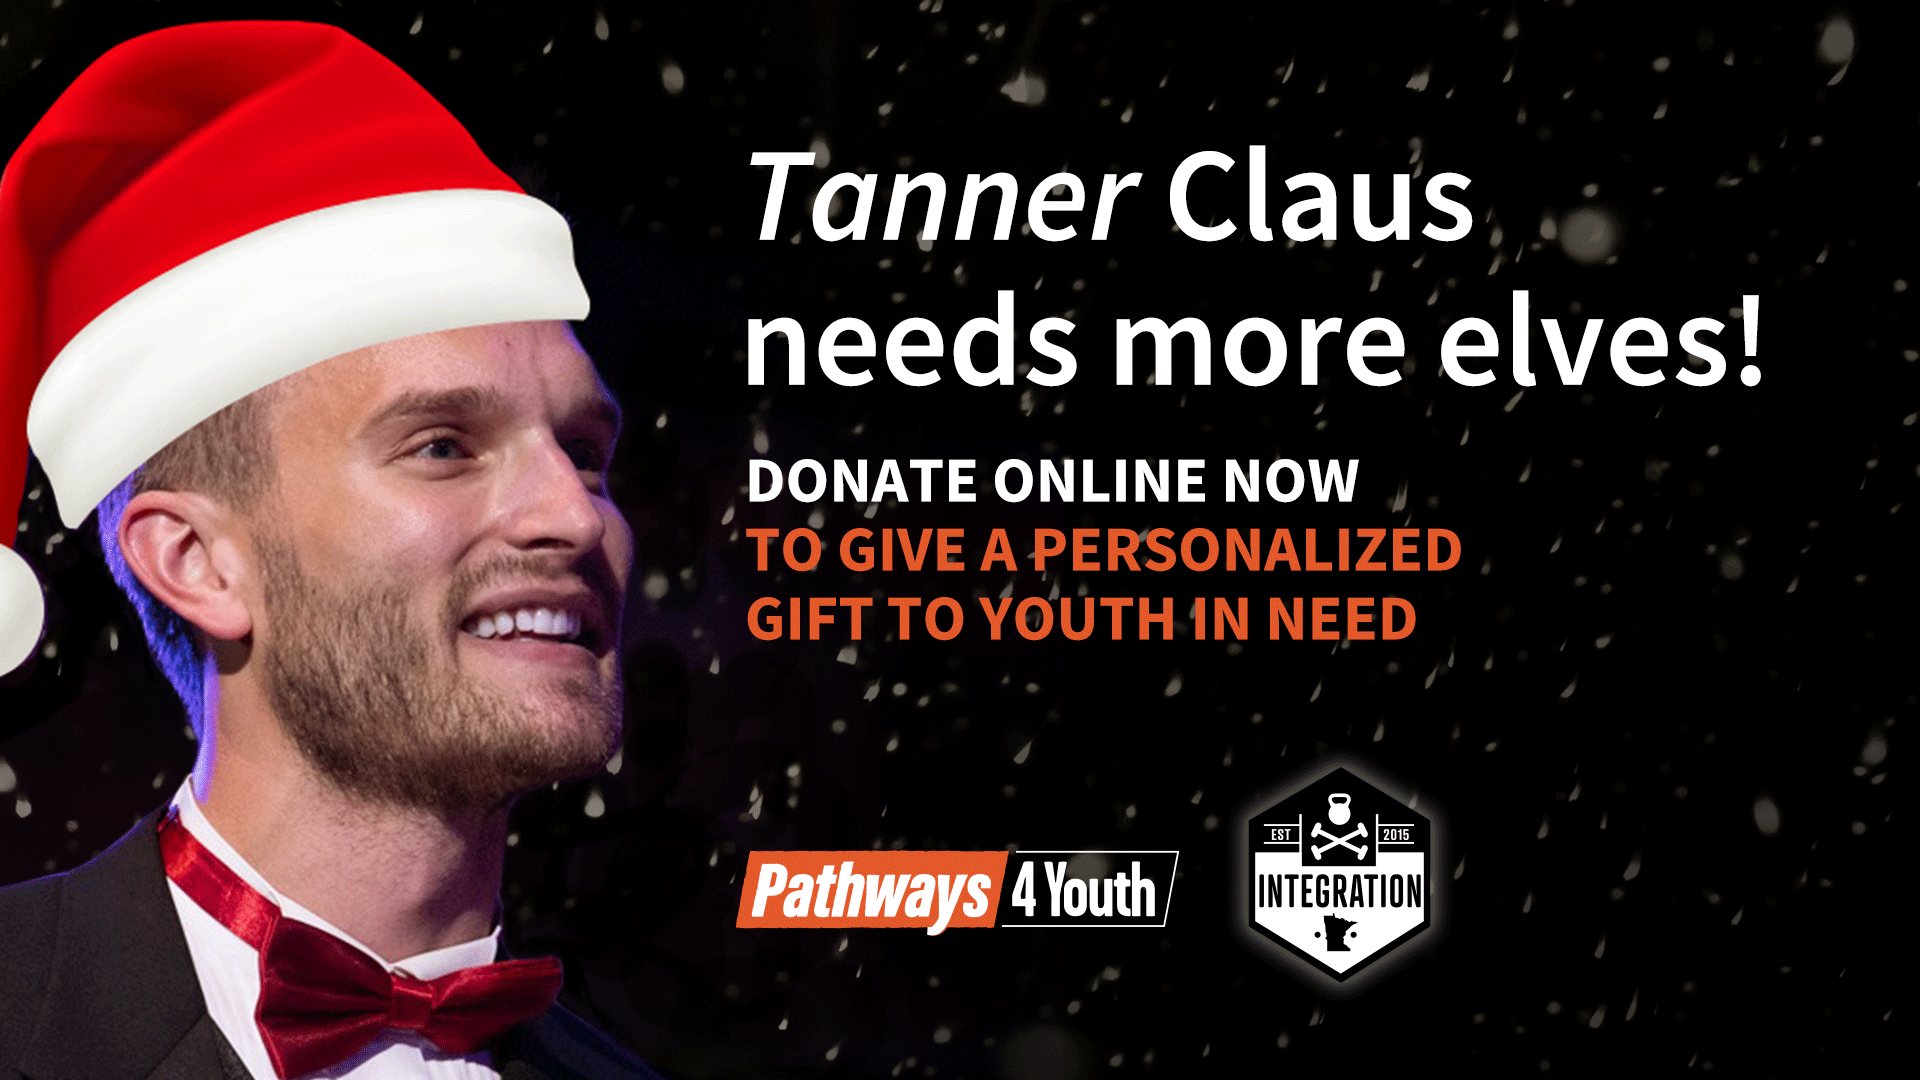 The Untold Story of Tanner Claus and Pathways4Youth